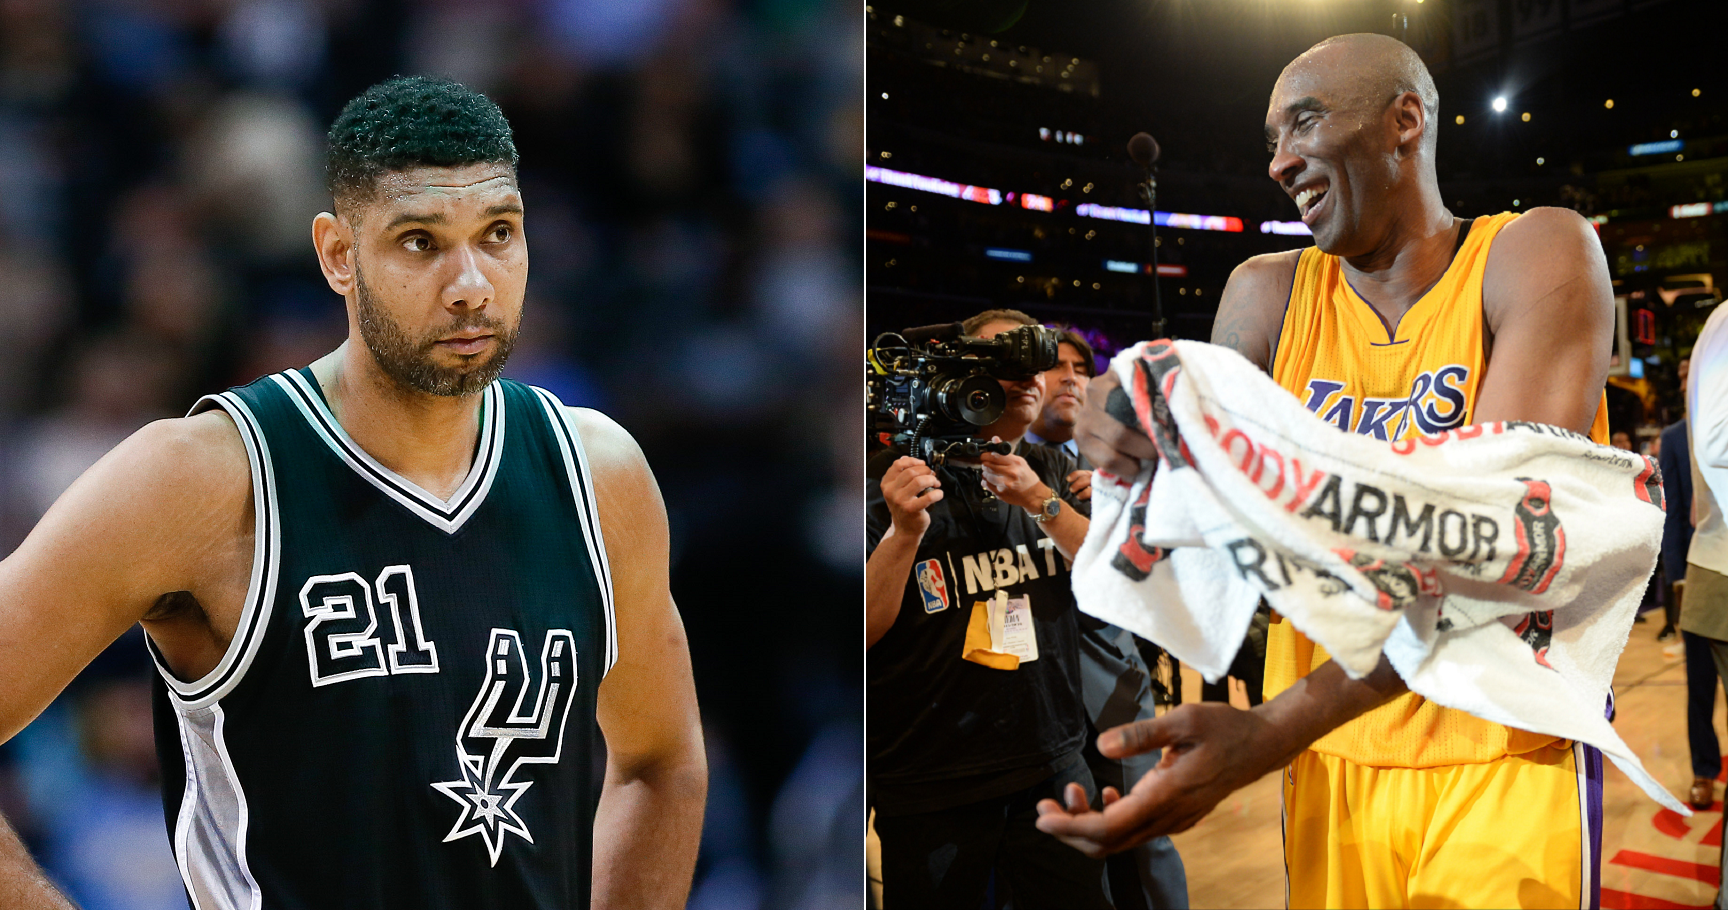 20 Greatest NBA Players To Play Their Whole Career For One Team